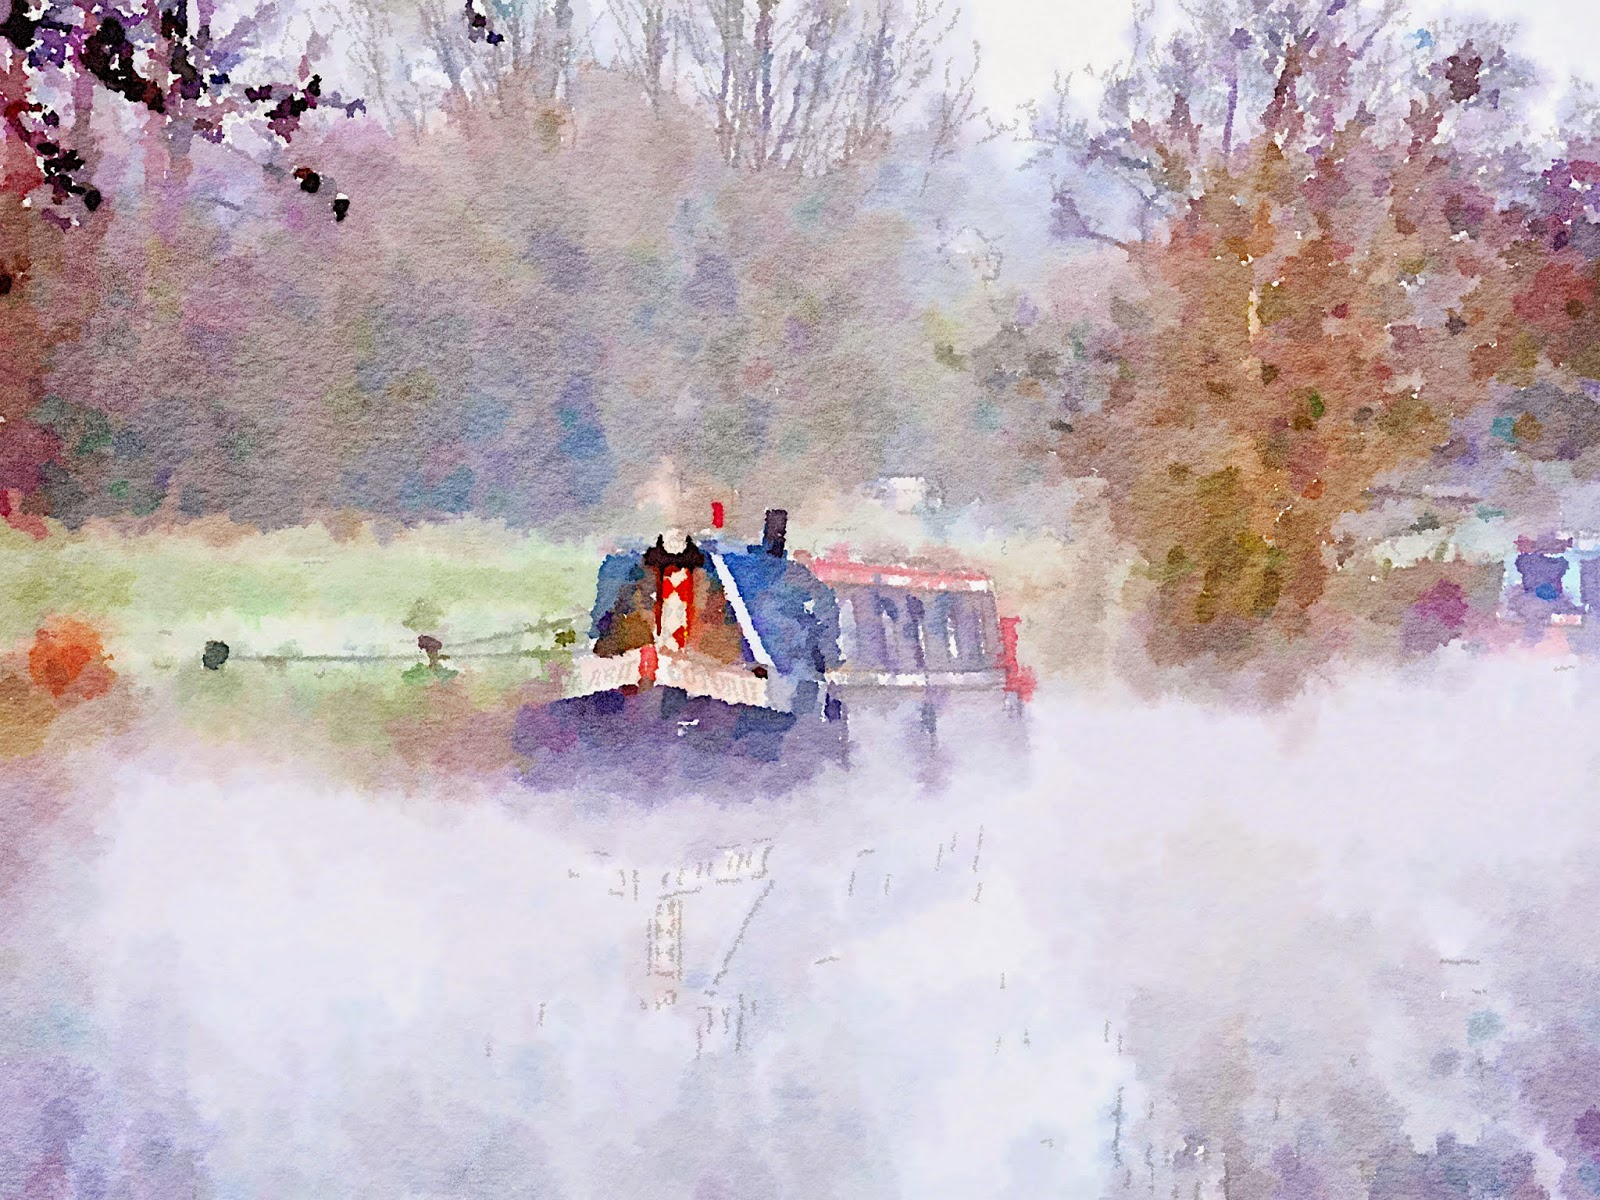 Narrowboat in the mist